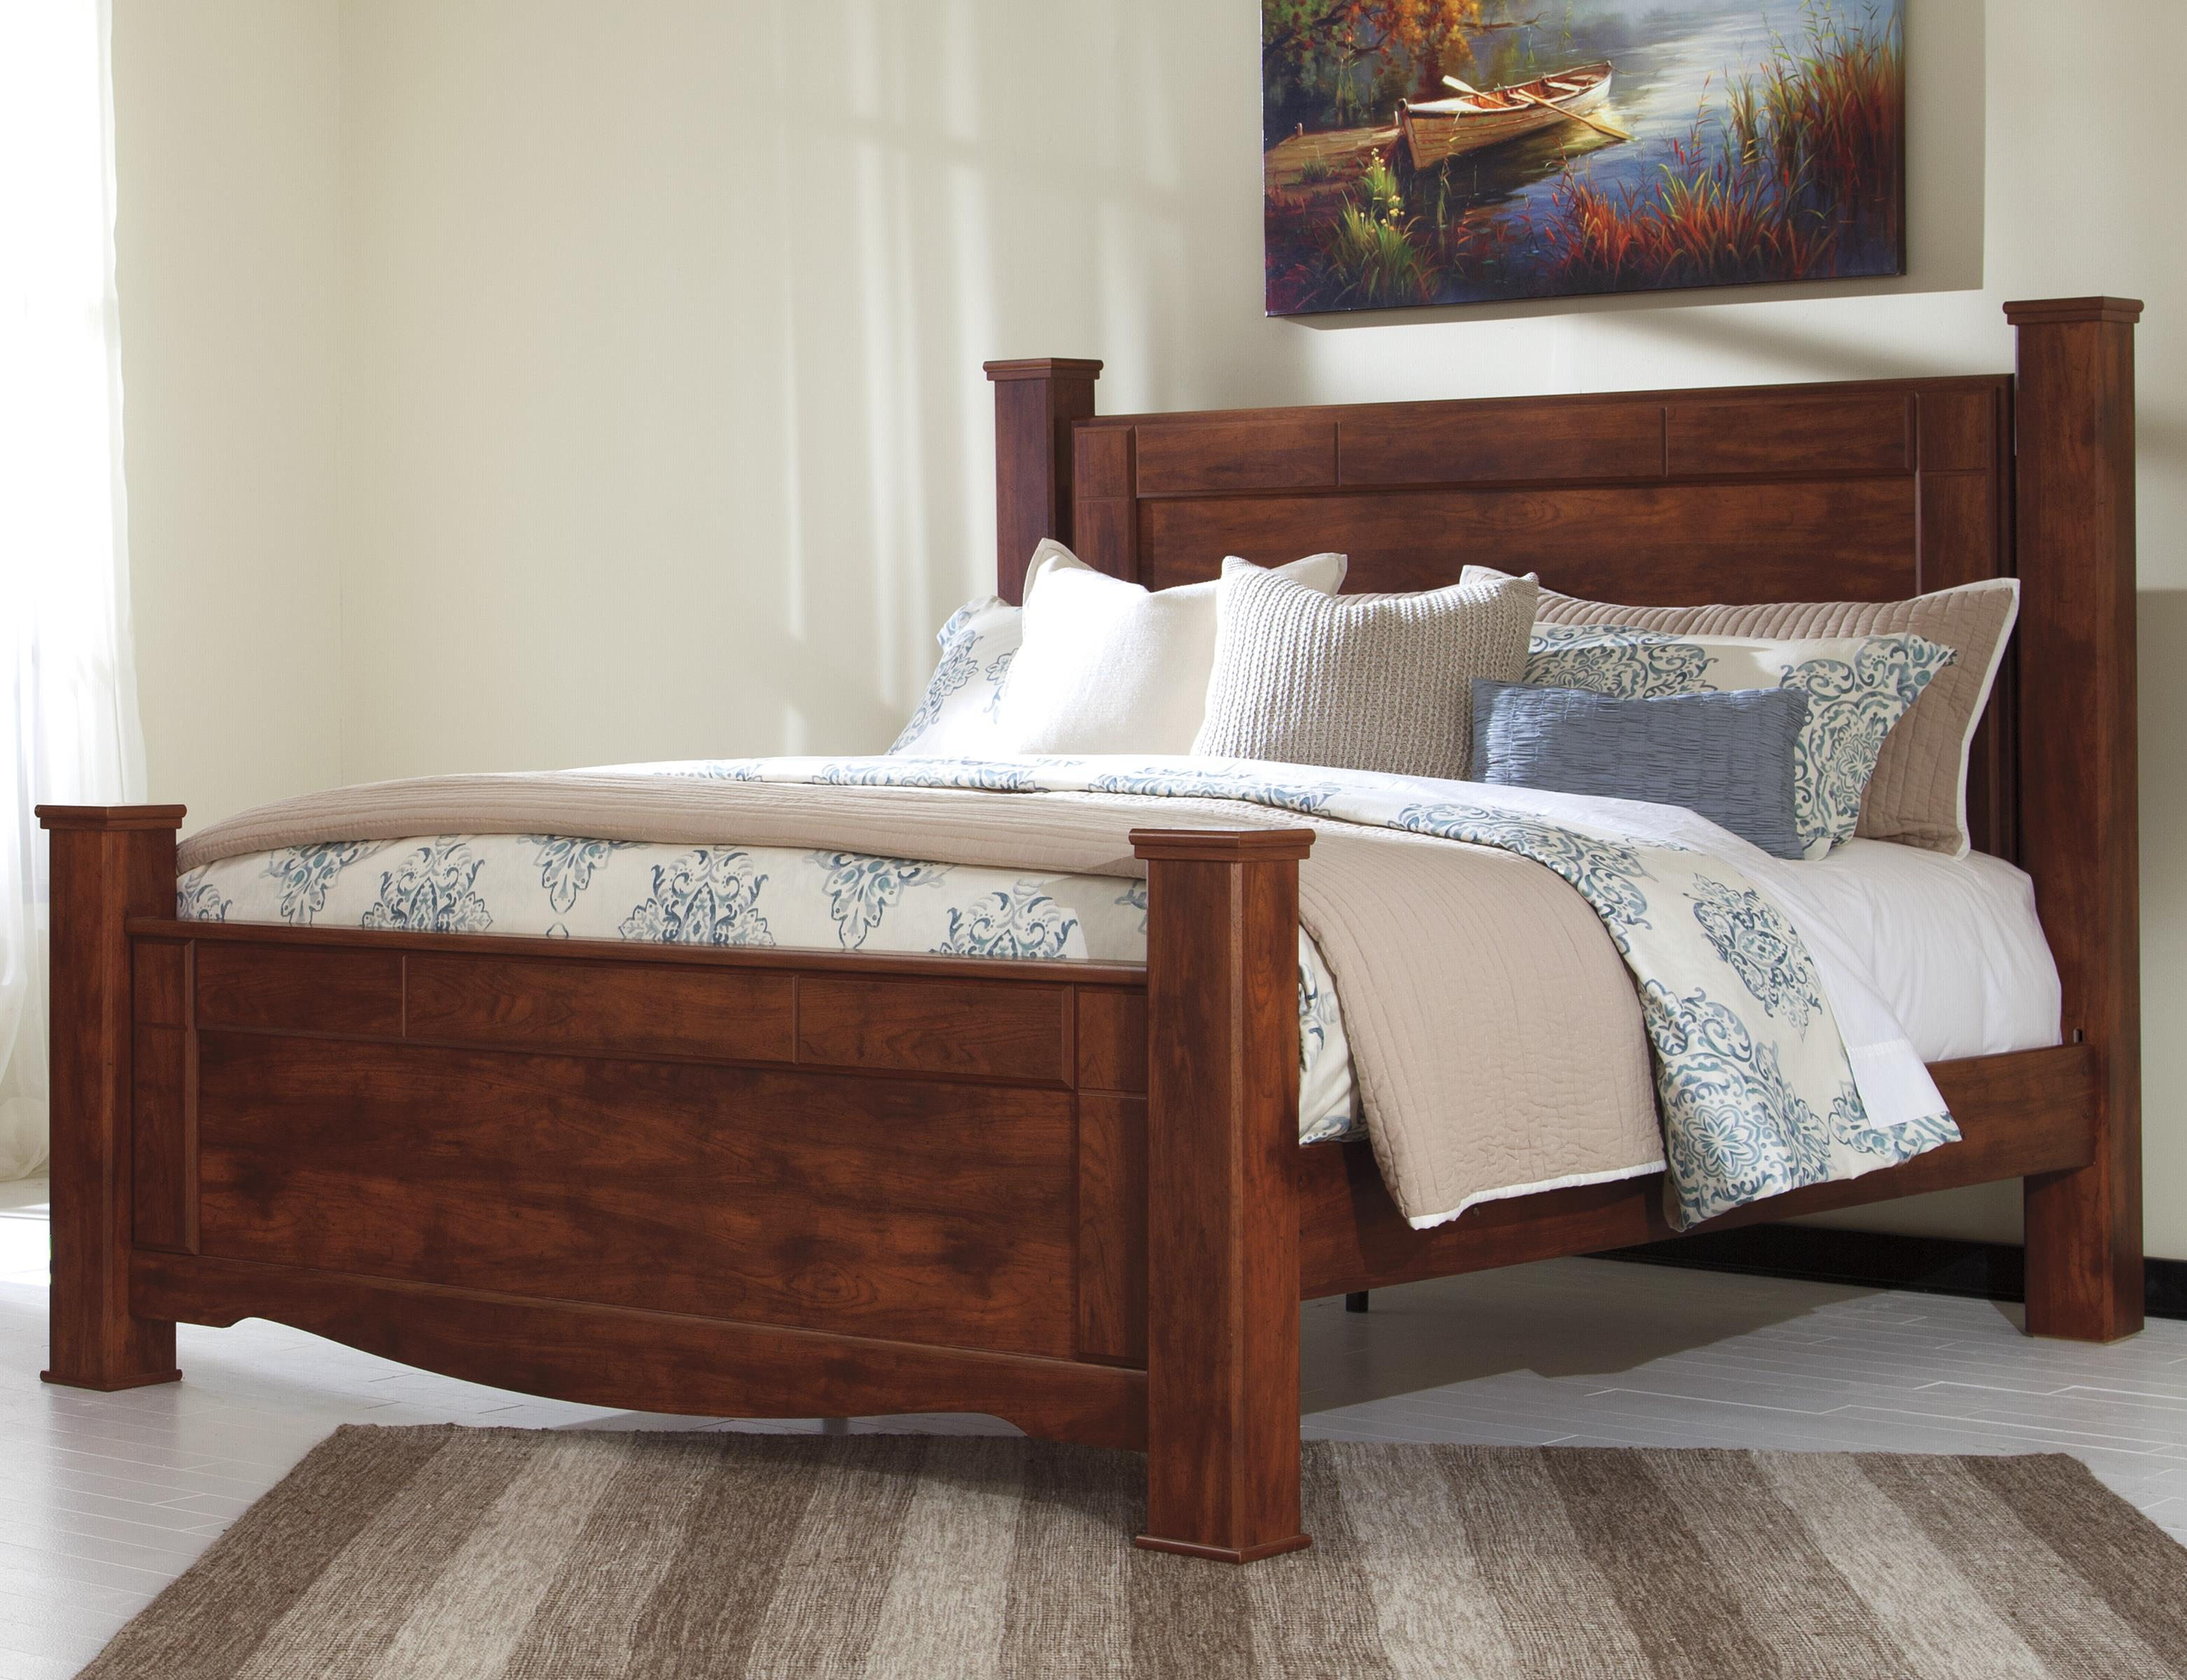 Signature Design by Ashley Brittberg King Poster Bed - Item Number: B265-68+66+61+99